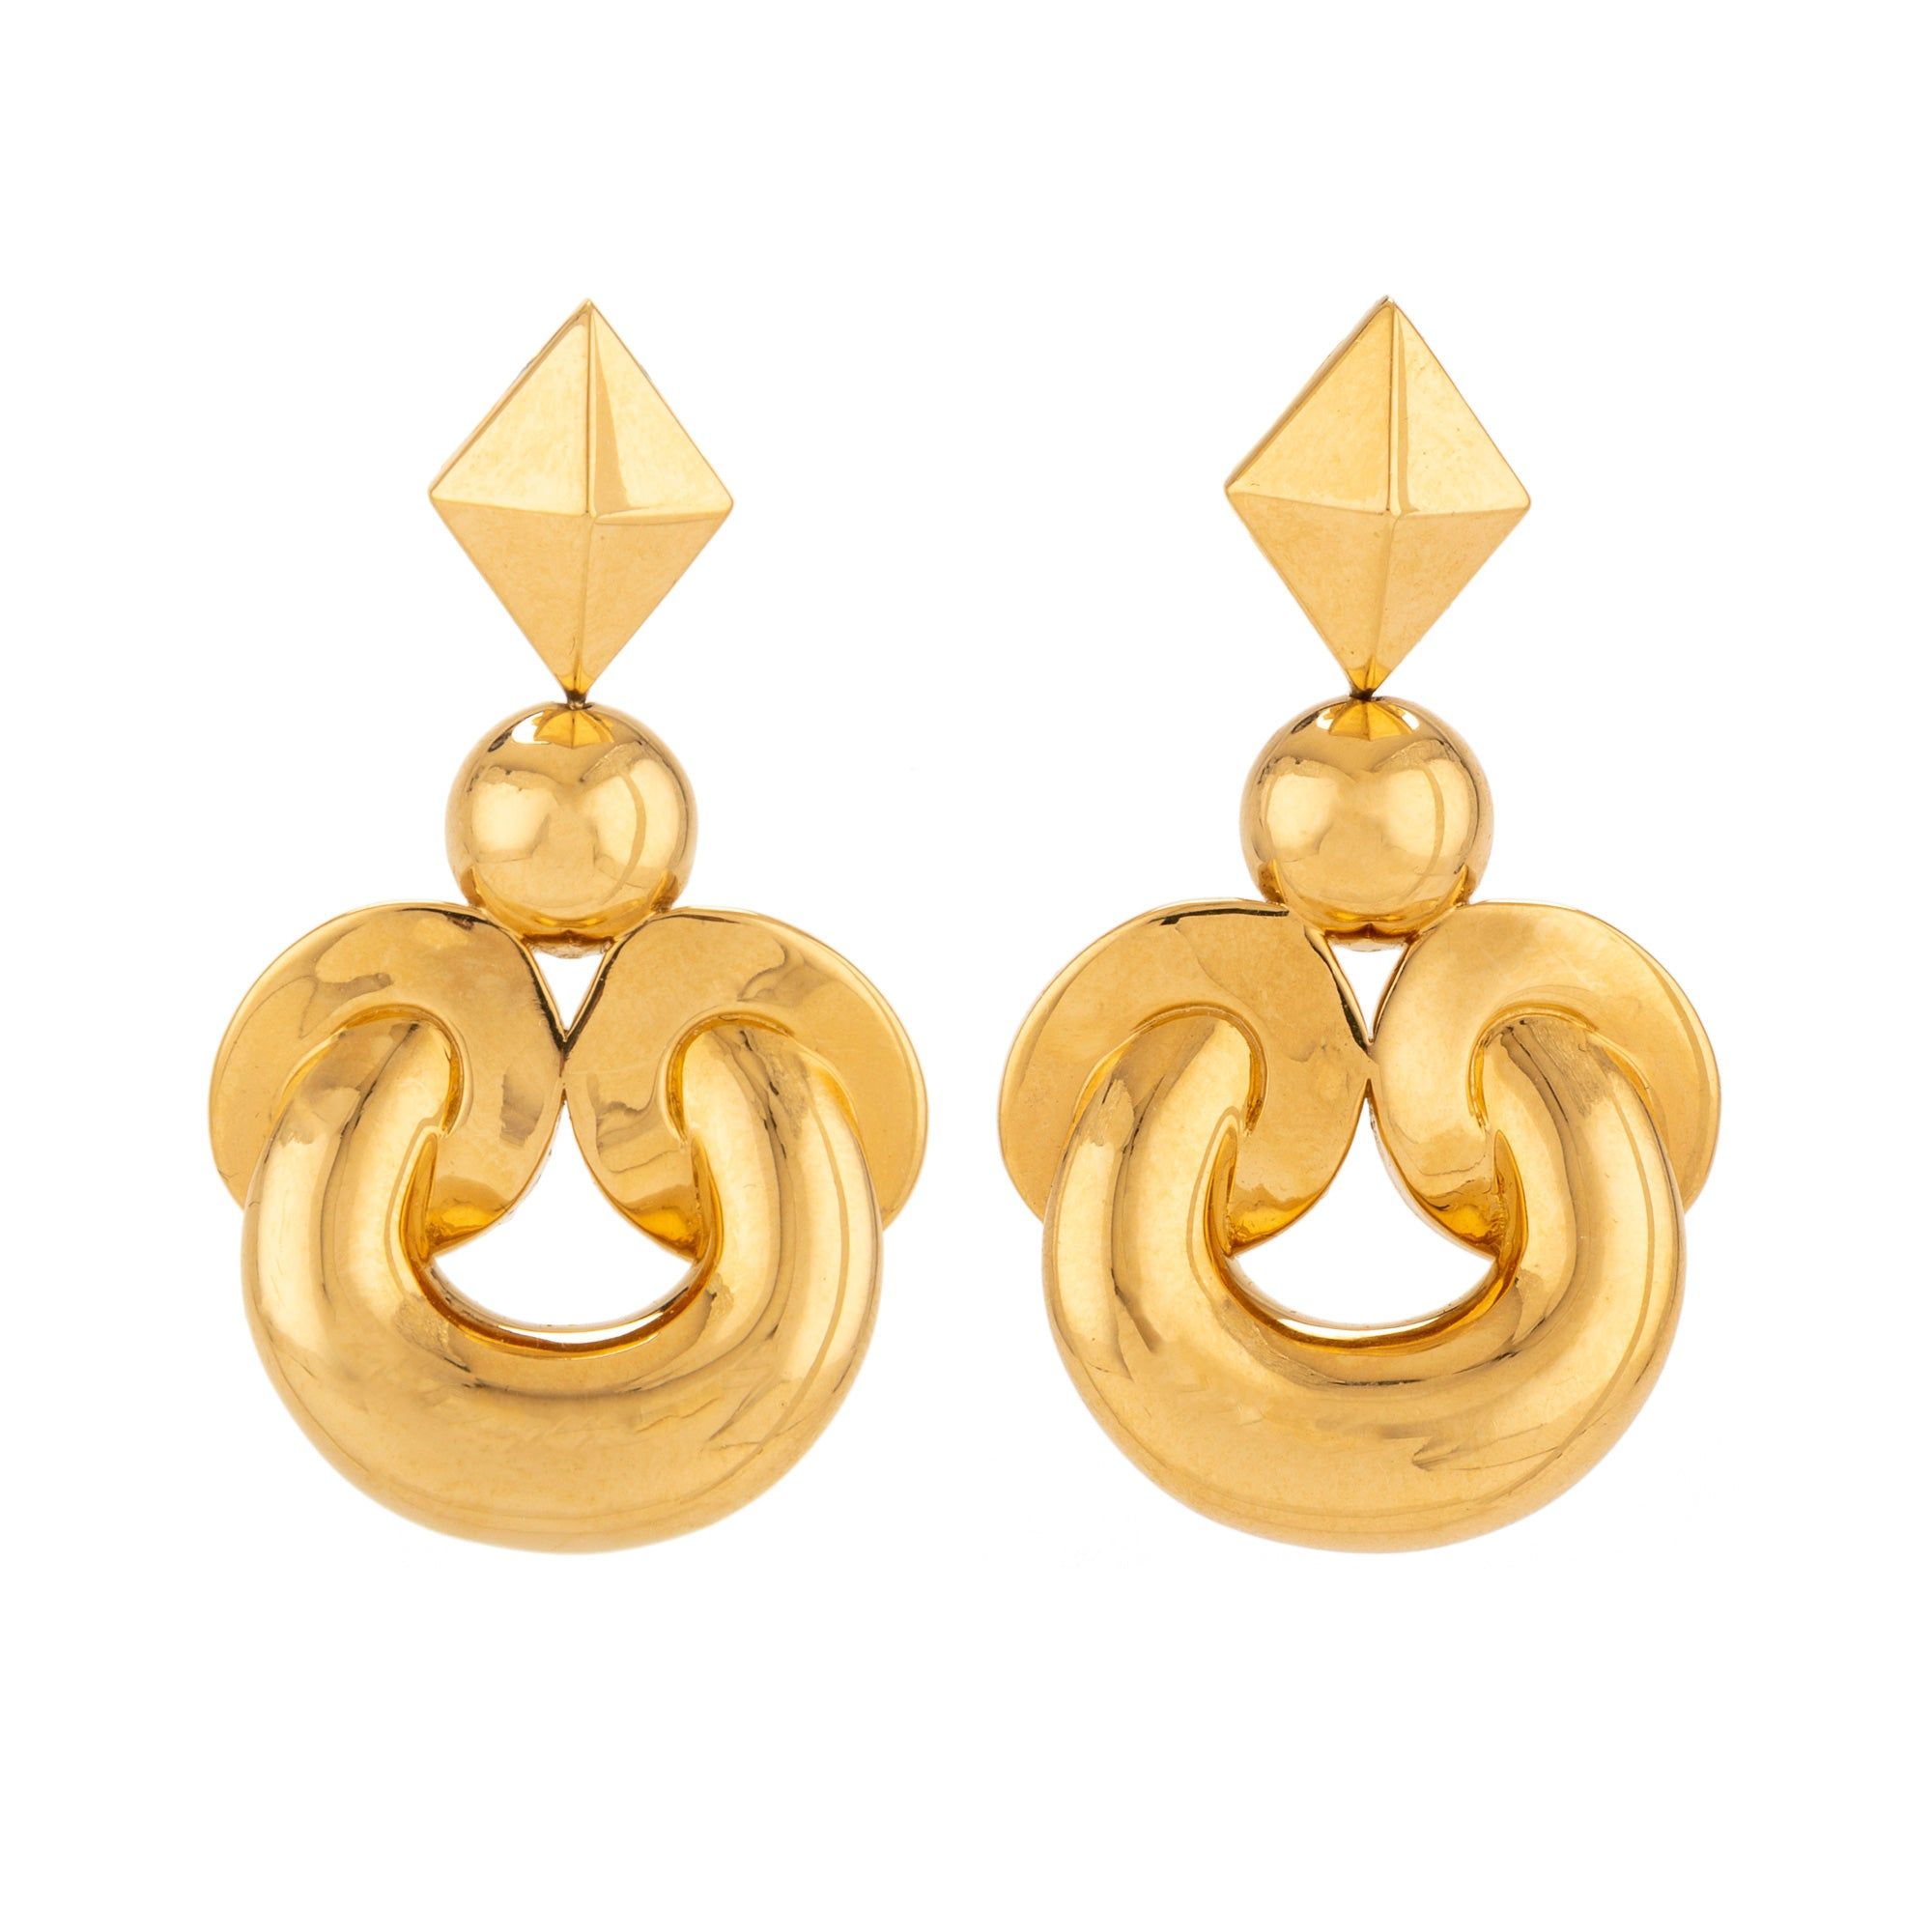 Twist v gold earring